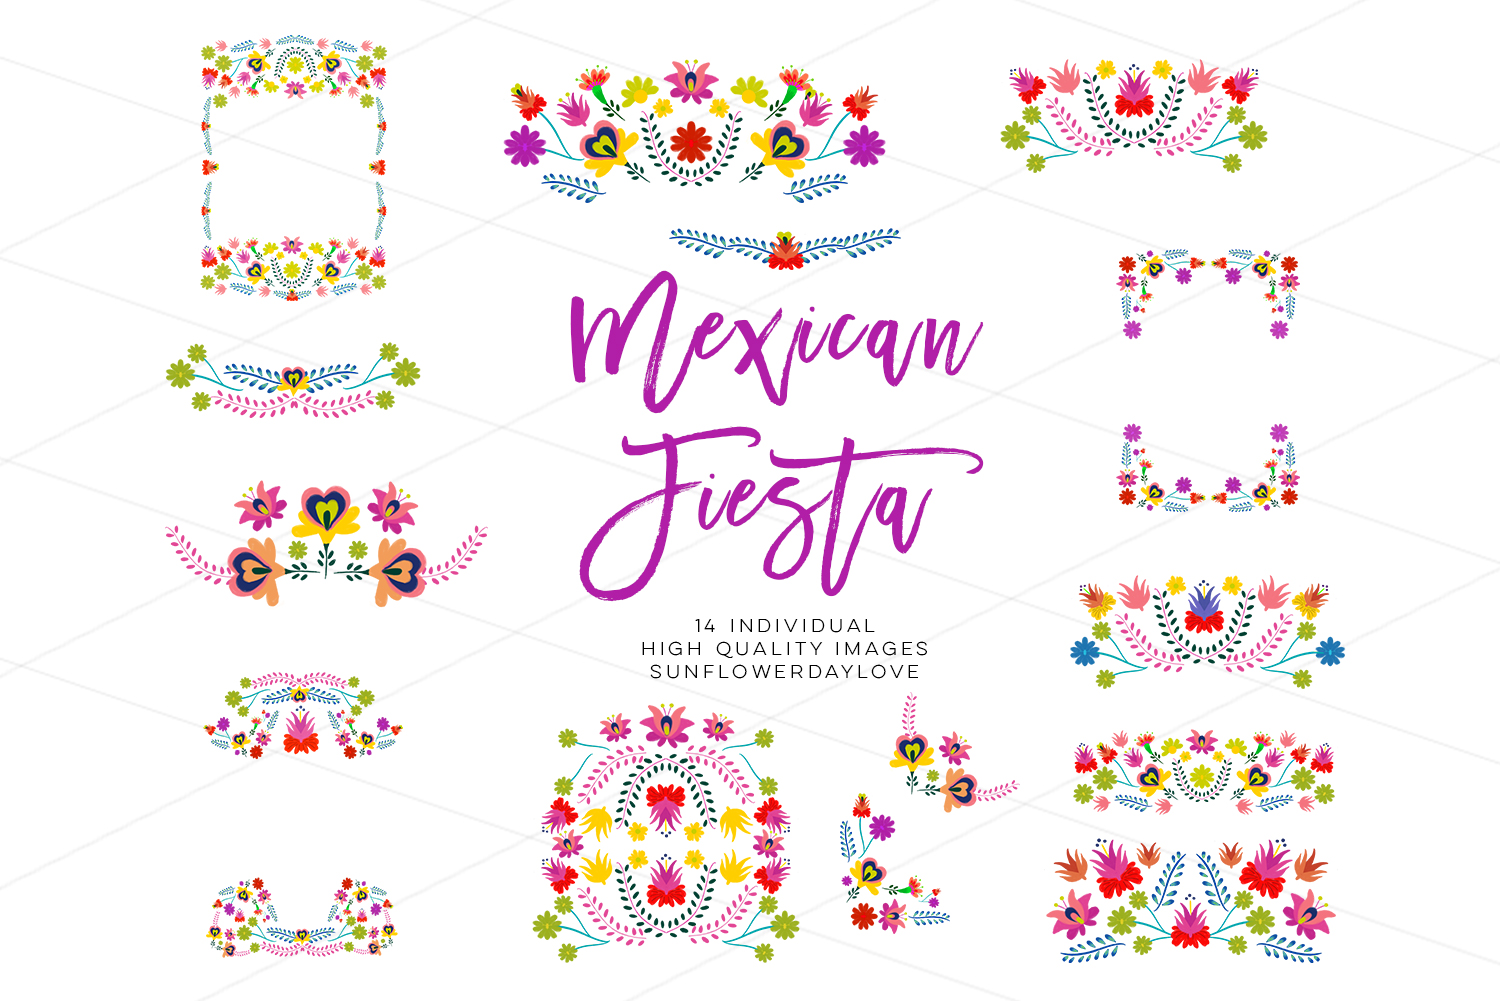 Watercolor party clipart picture free stock Fiesta clipart, Mexican Watercolor Floral clipart, PNG mexican party clip  art, mexican flowers watercolor floral clip art, cinco de mayo - Vsual picture free stock